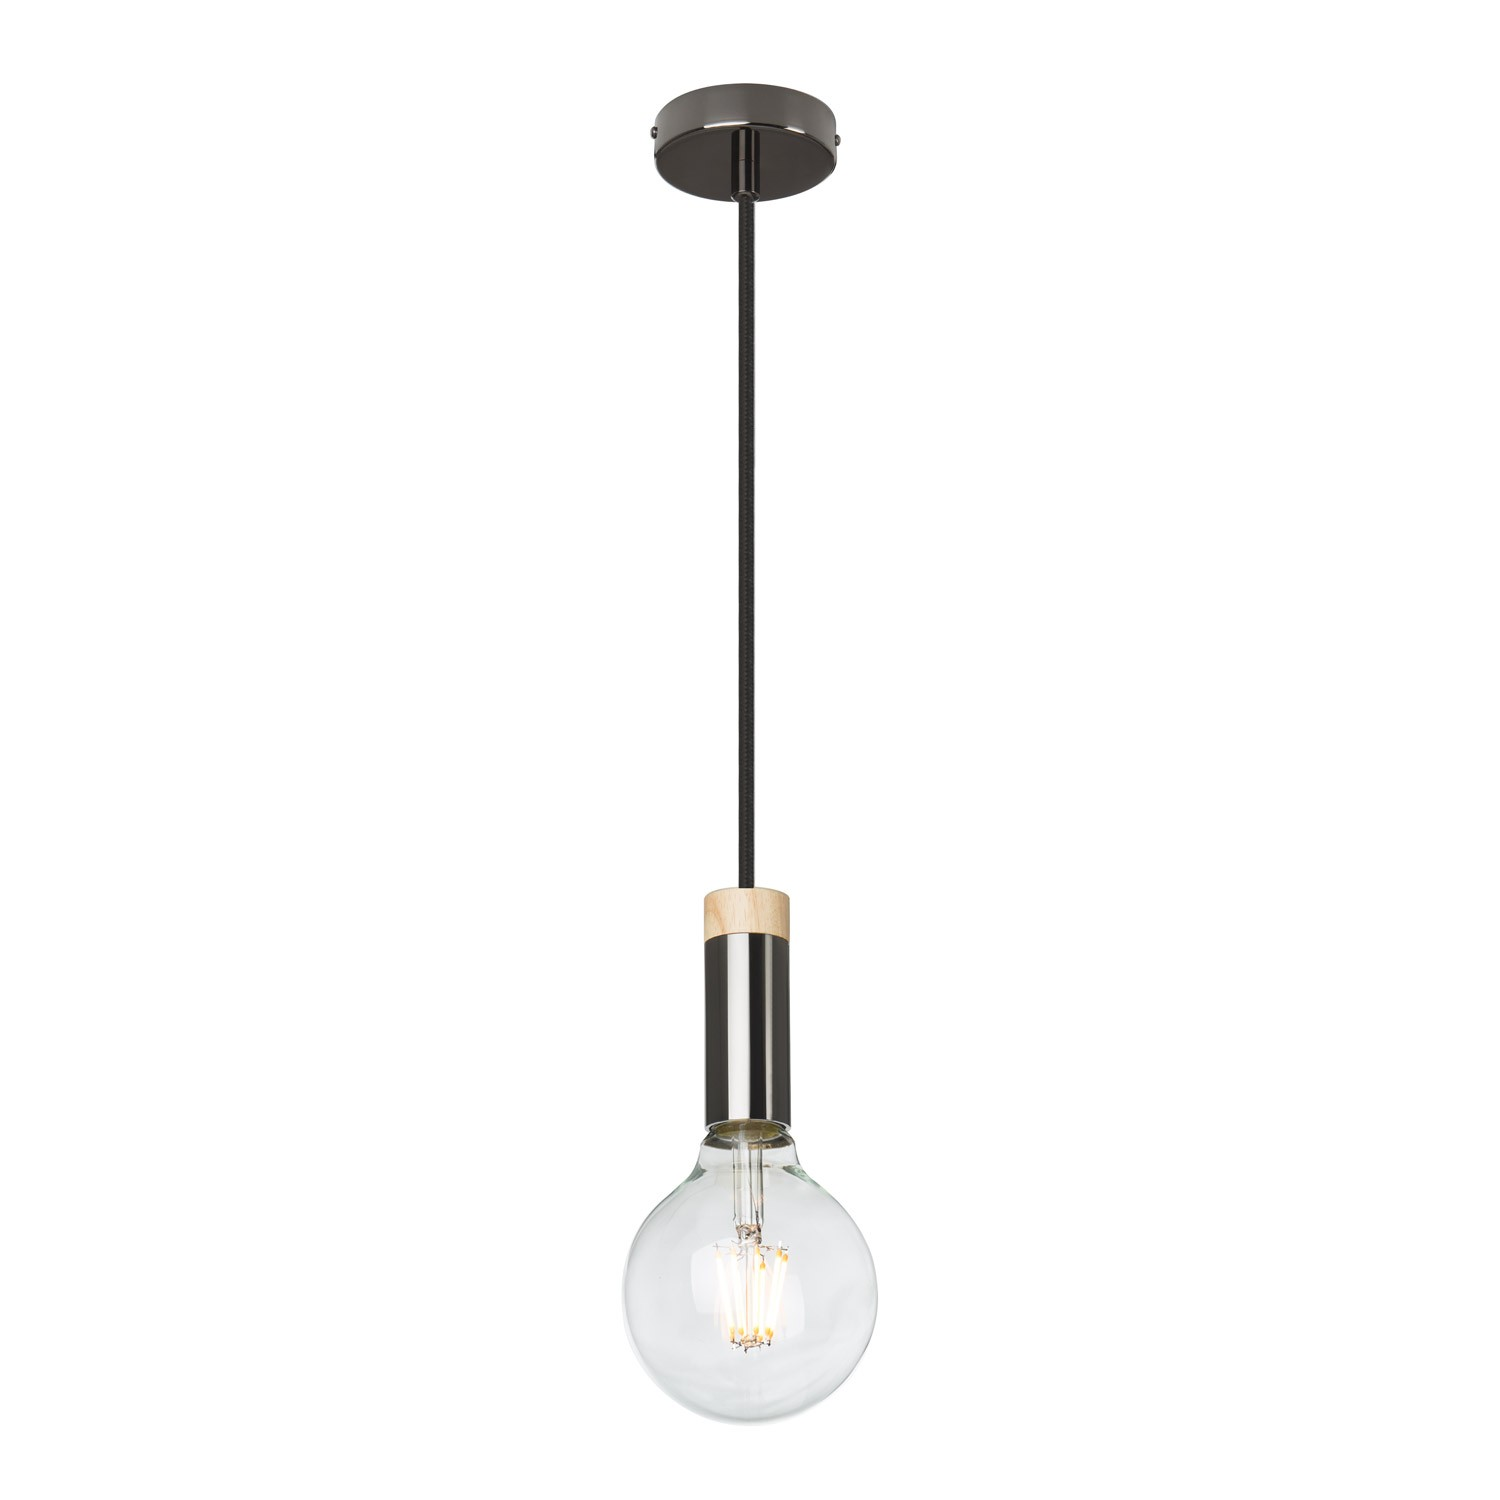 Thor Lamp, gallery image 1